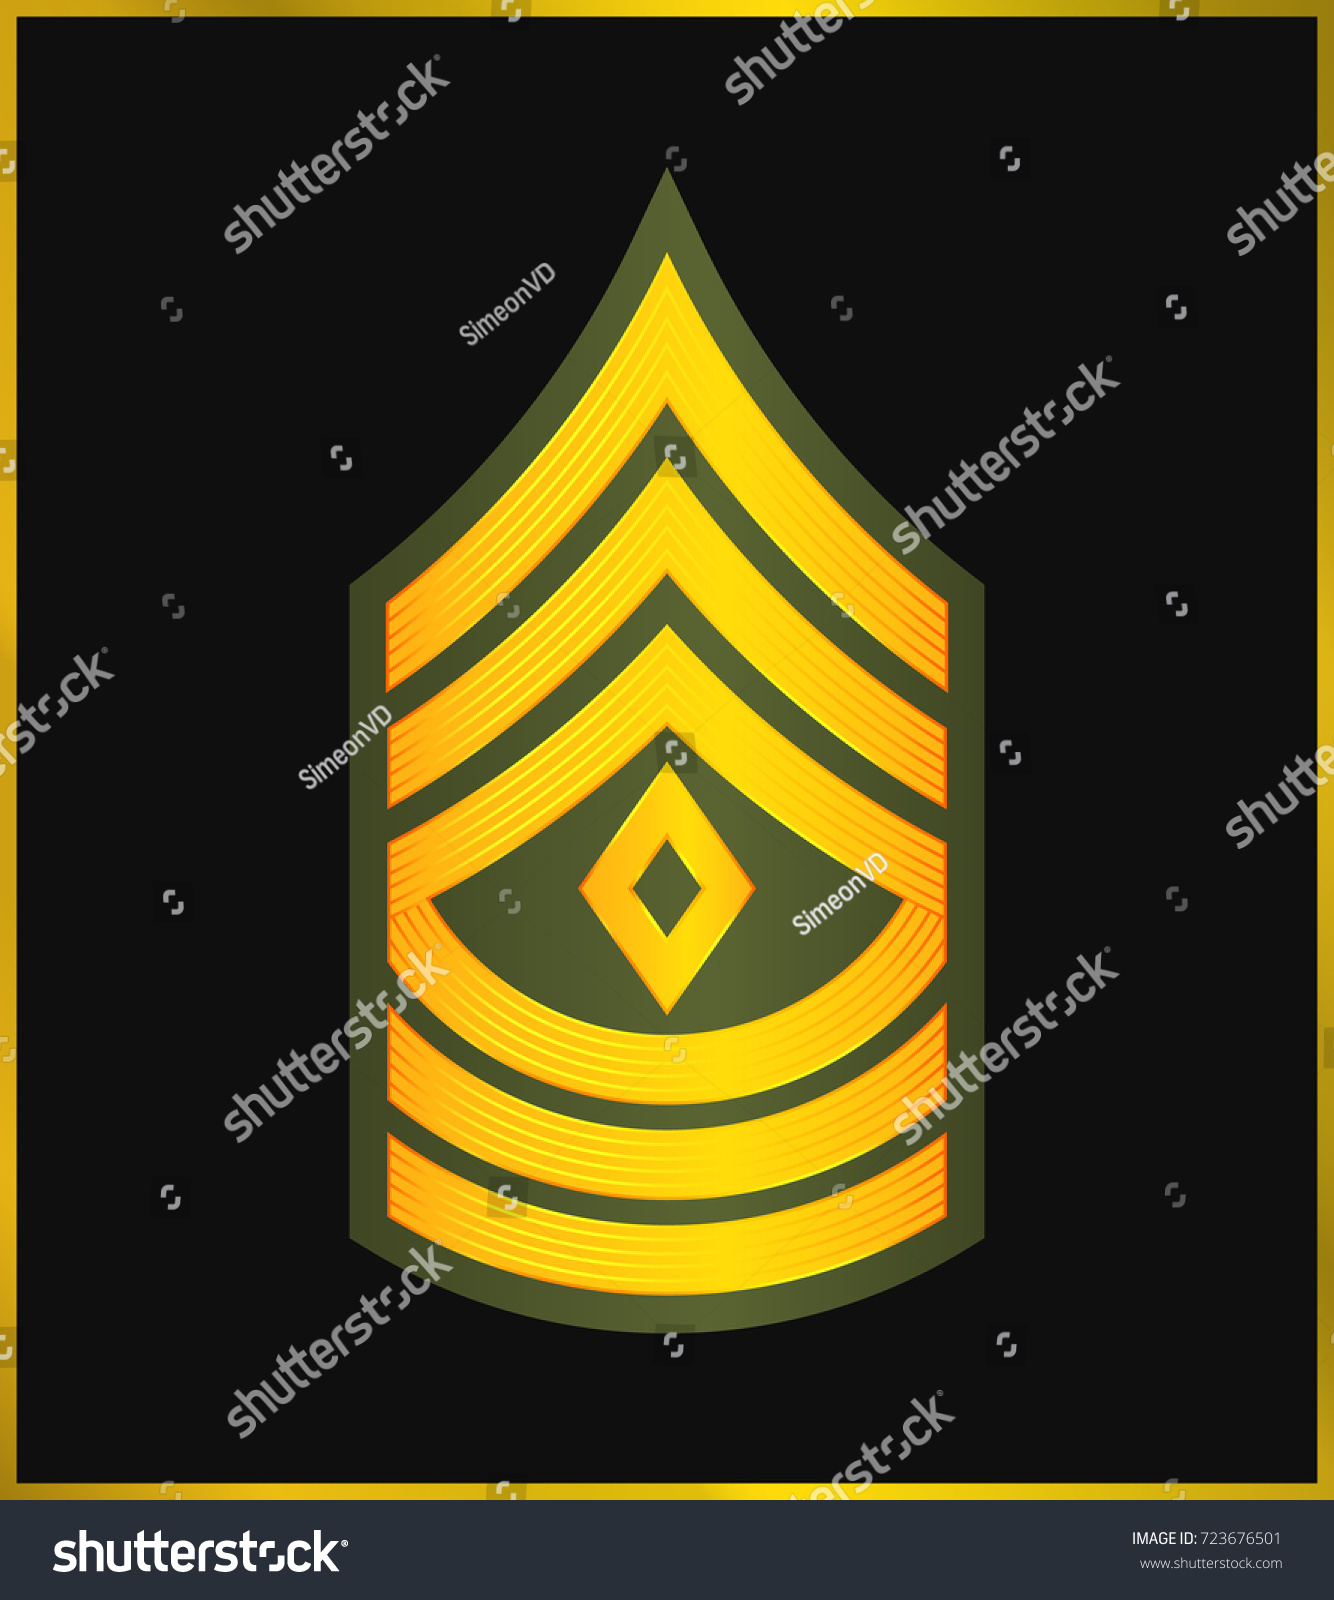 Military ranks insignia stripes chevrons army stock vector 723676501 military ranks and insignia stripes and chevrons of army first sergeant biocorpaavc Images